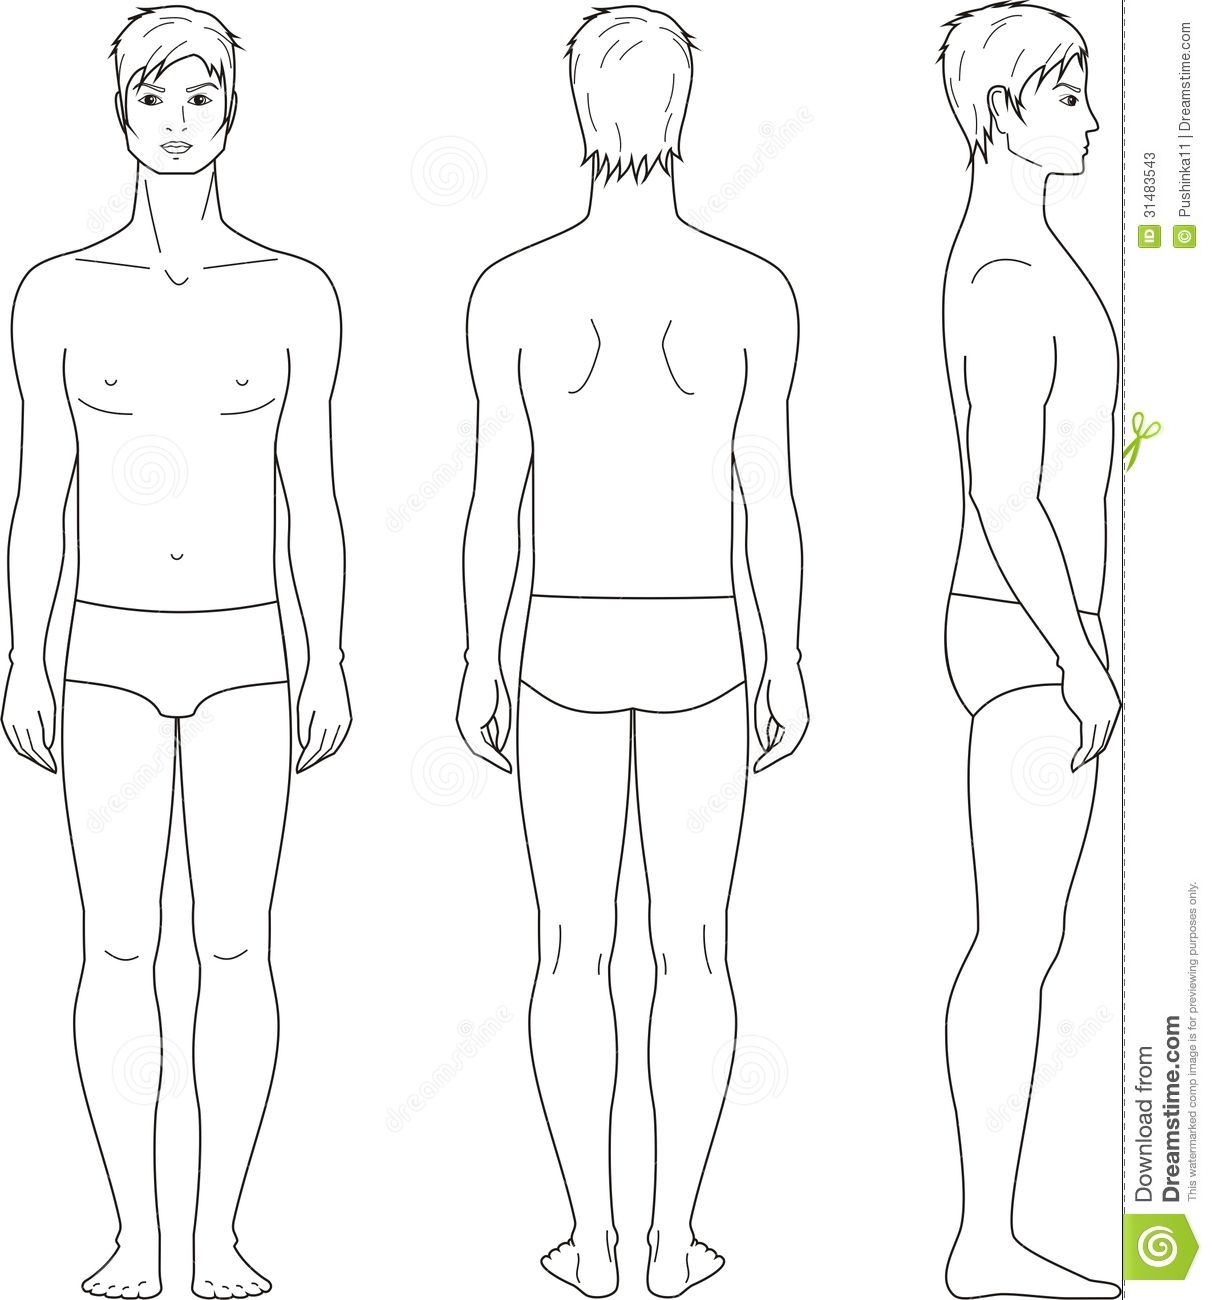 Body Front Back Pesquisa Google Fashion Illustration Template Fashion Sketches Men Mens Fashion Illustration Body reference drawing drawing body poses human figure drawing drawing reference poses anatomy reference male pose reference drawing muscles drawing human figures is considered to be the most difficult for artists to do. fashion illustration template fashion